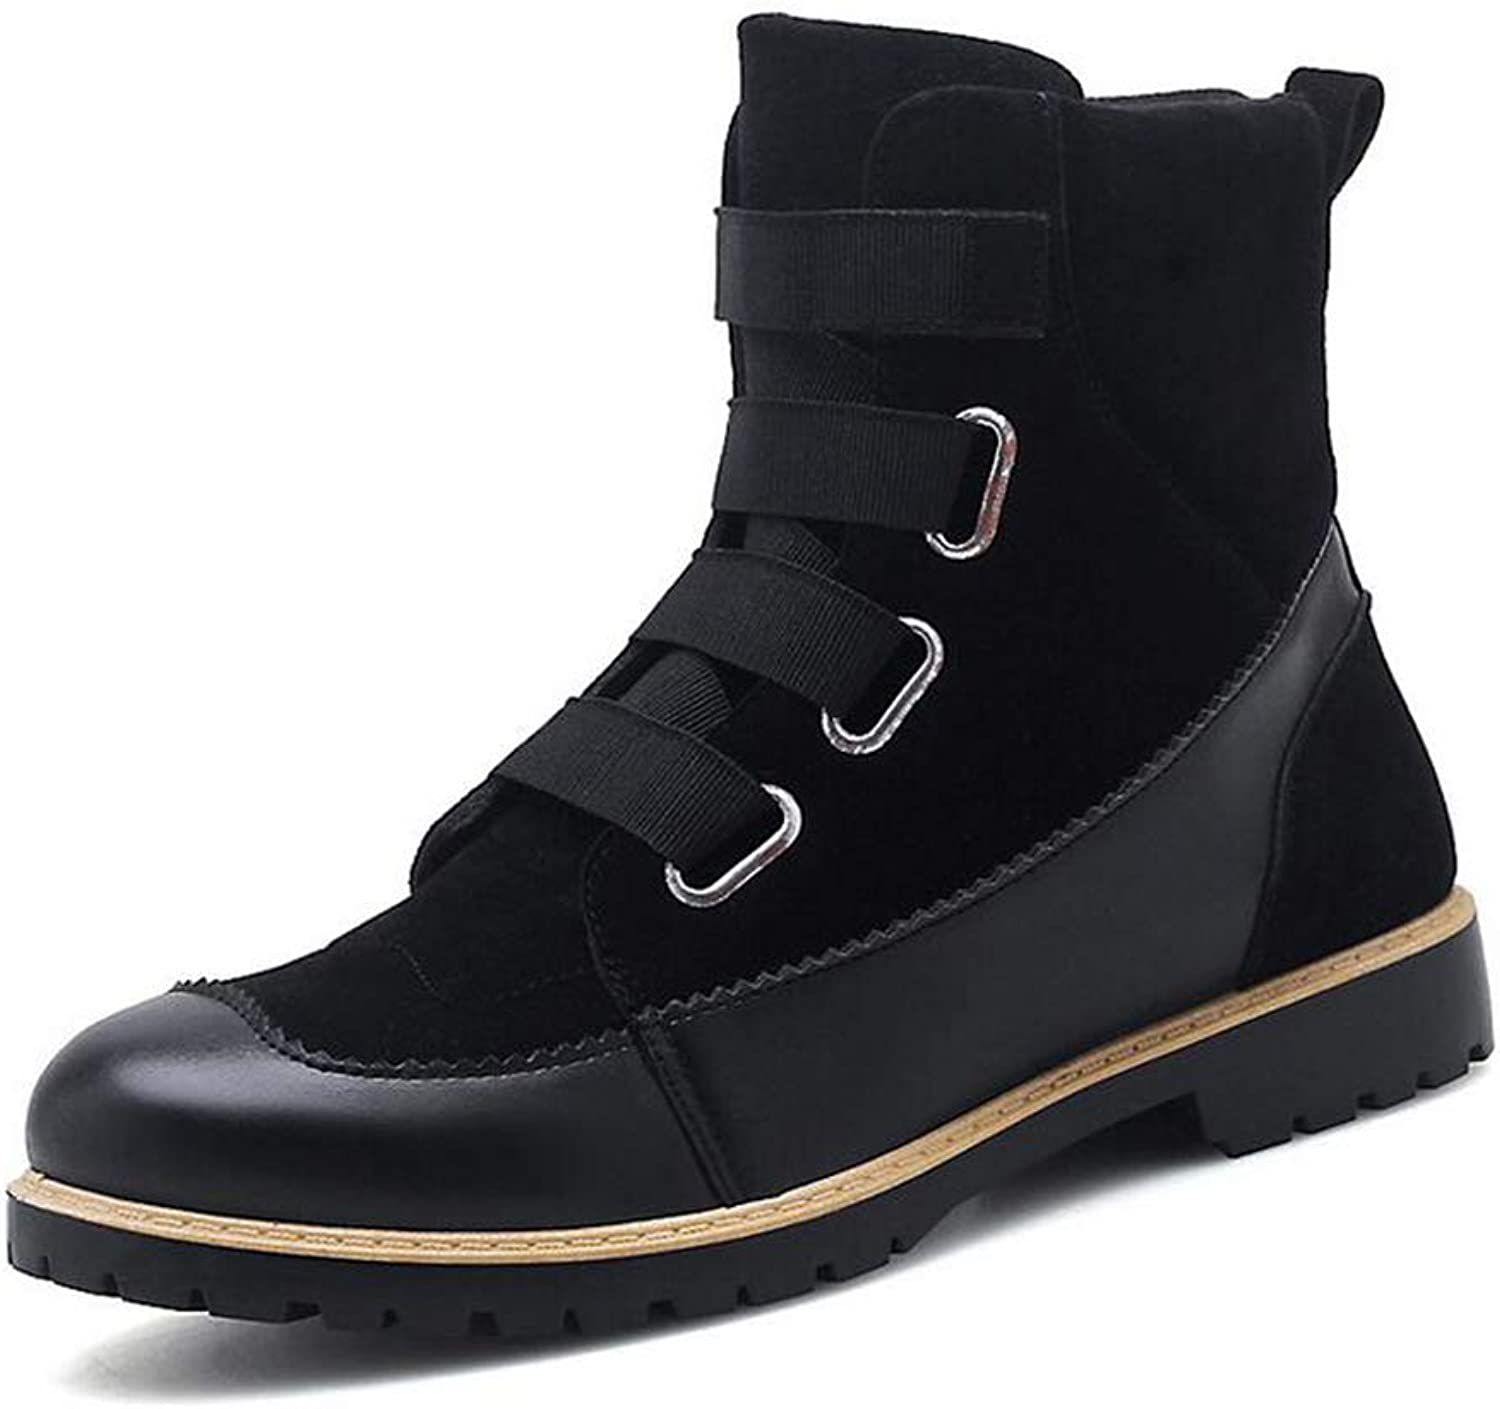 Y-H Men's shoes, Leather Fall Winter New Formal shoes, Tide Flow Personality Martins Boots, Flat Casual shoes (color   Black, Size   43)